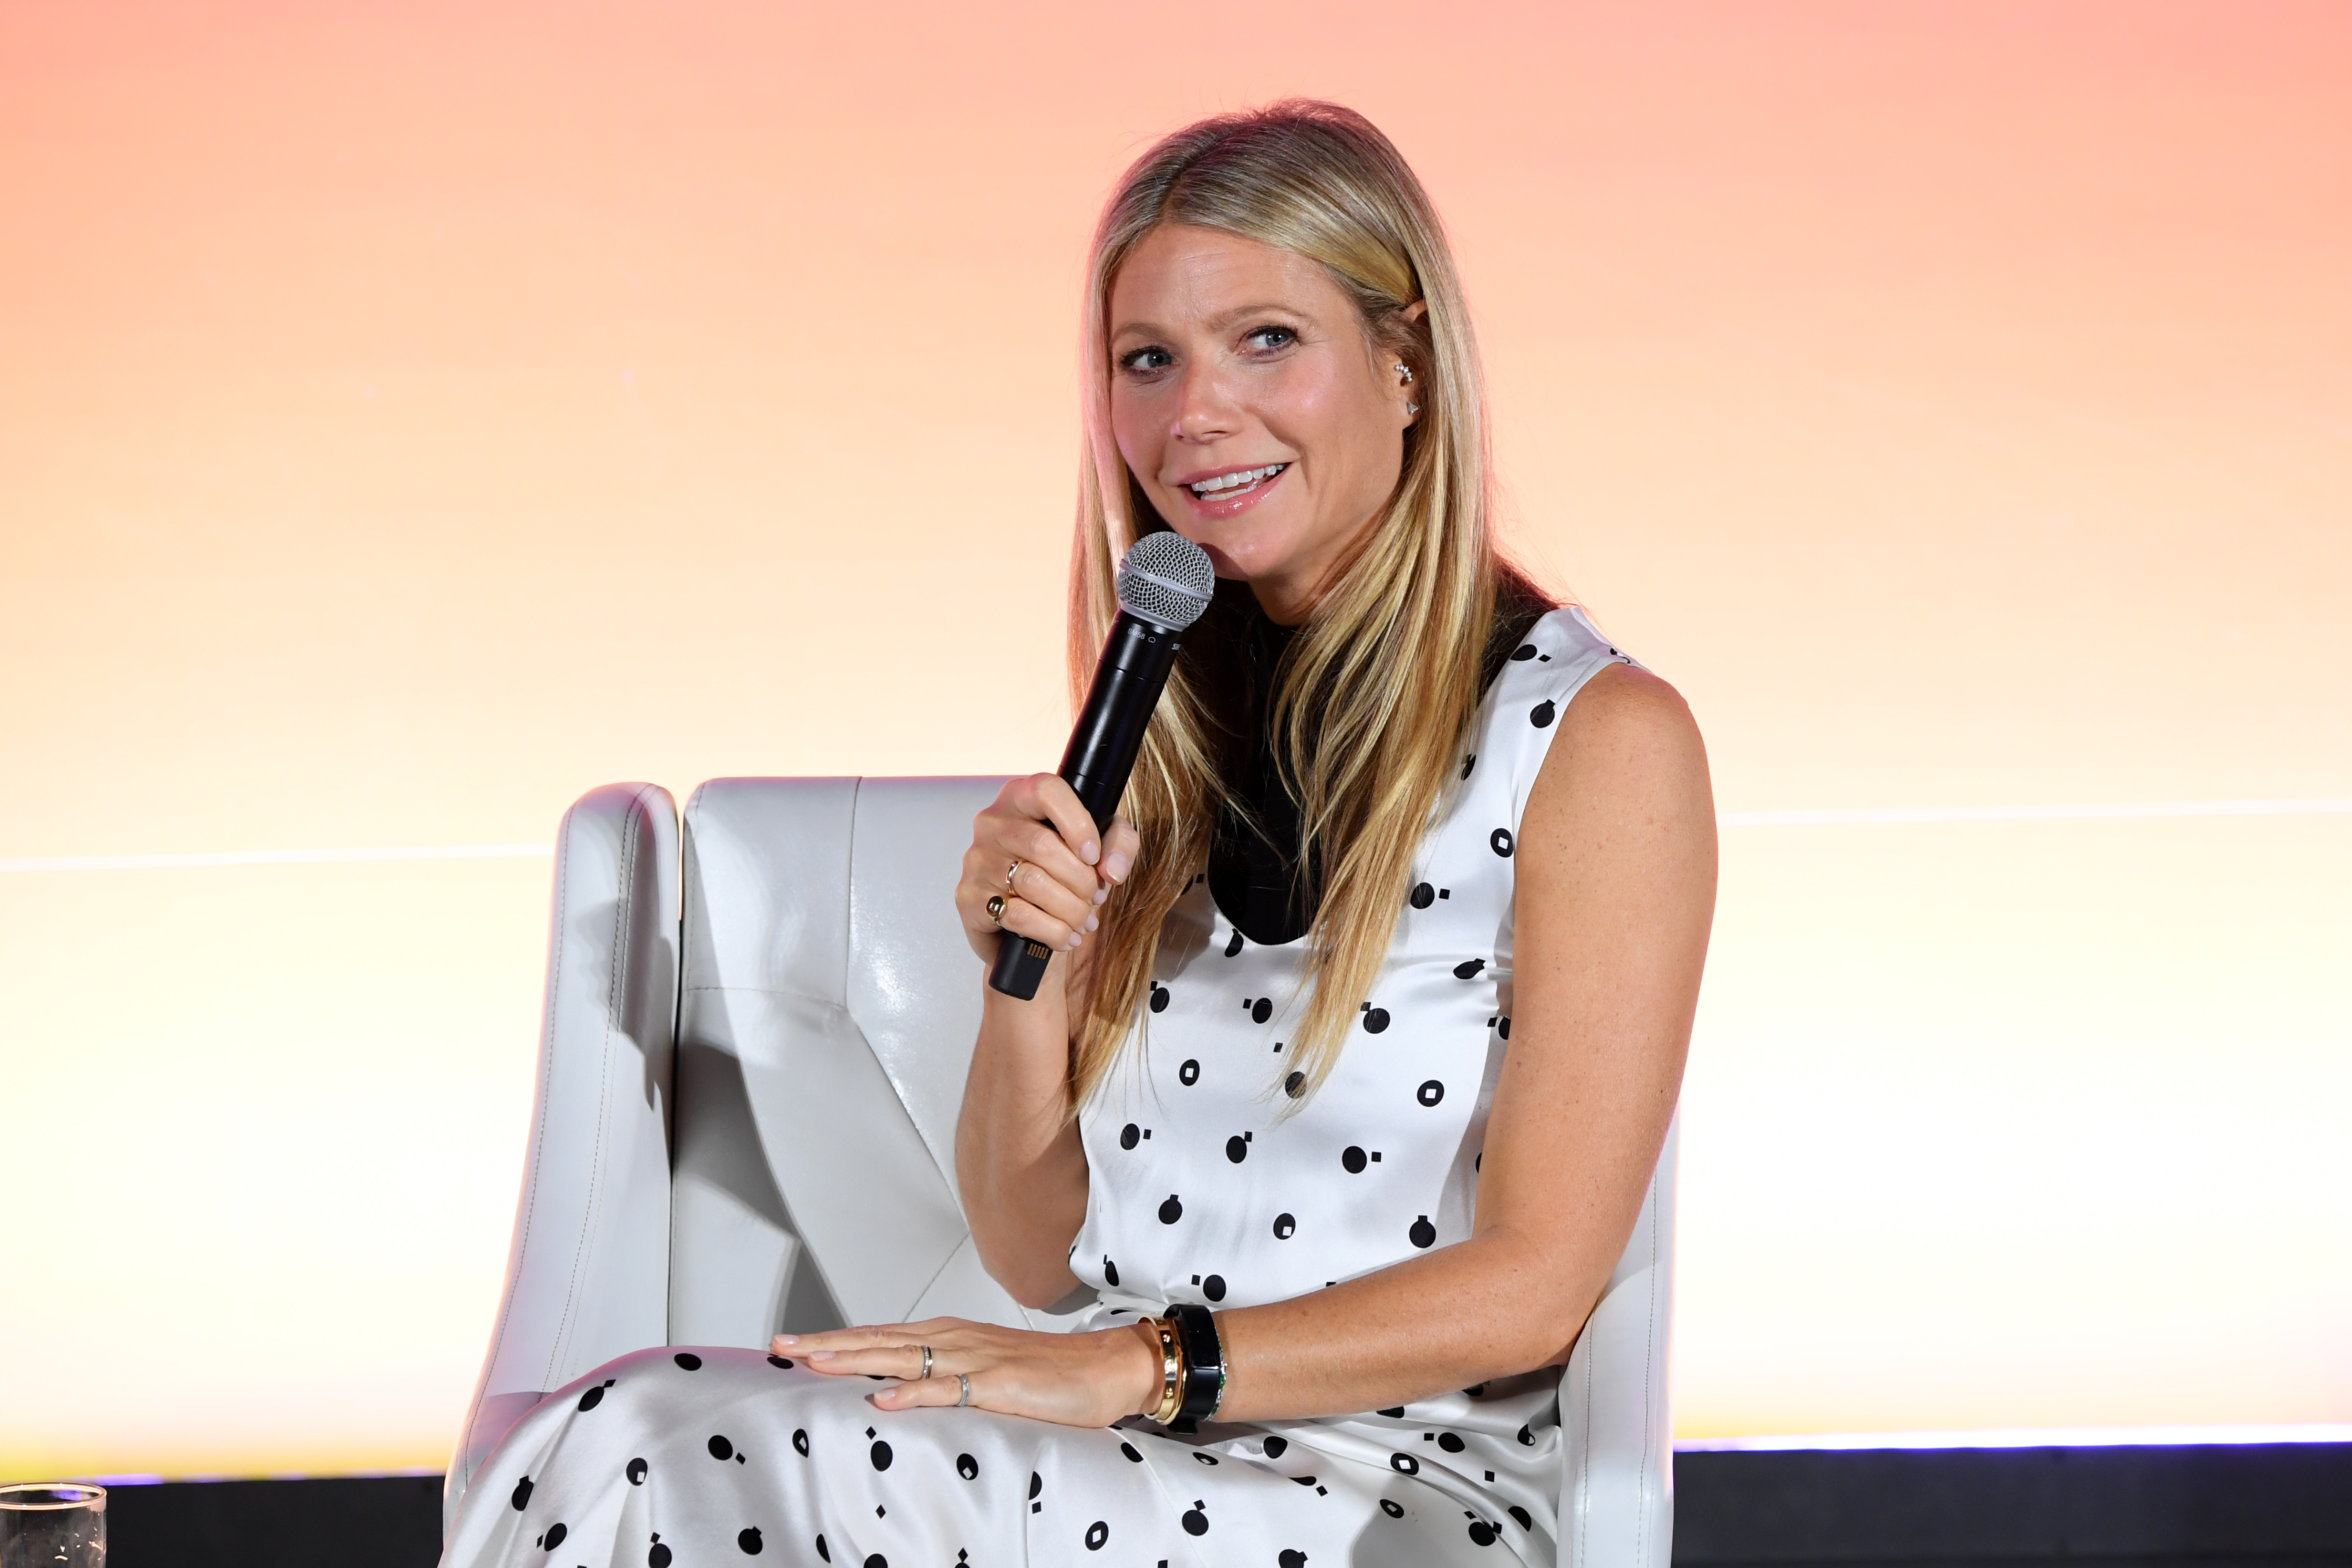 Gwyneth Paltrow Admits She Isn't 'That Passionate' About Her Acting Career Anymore